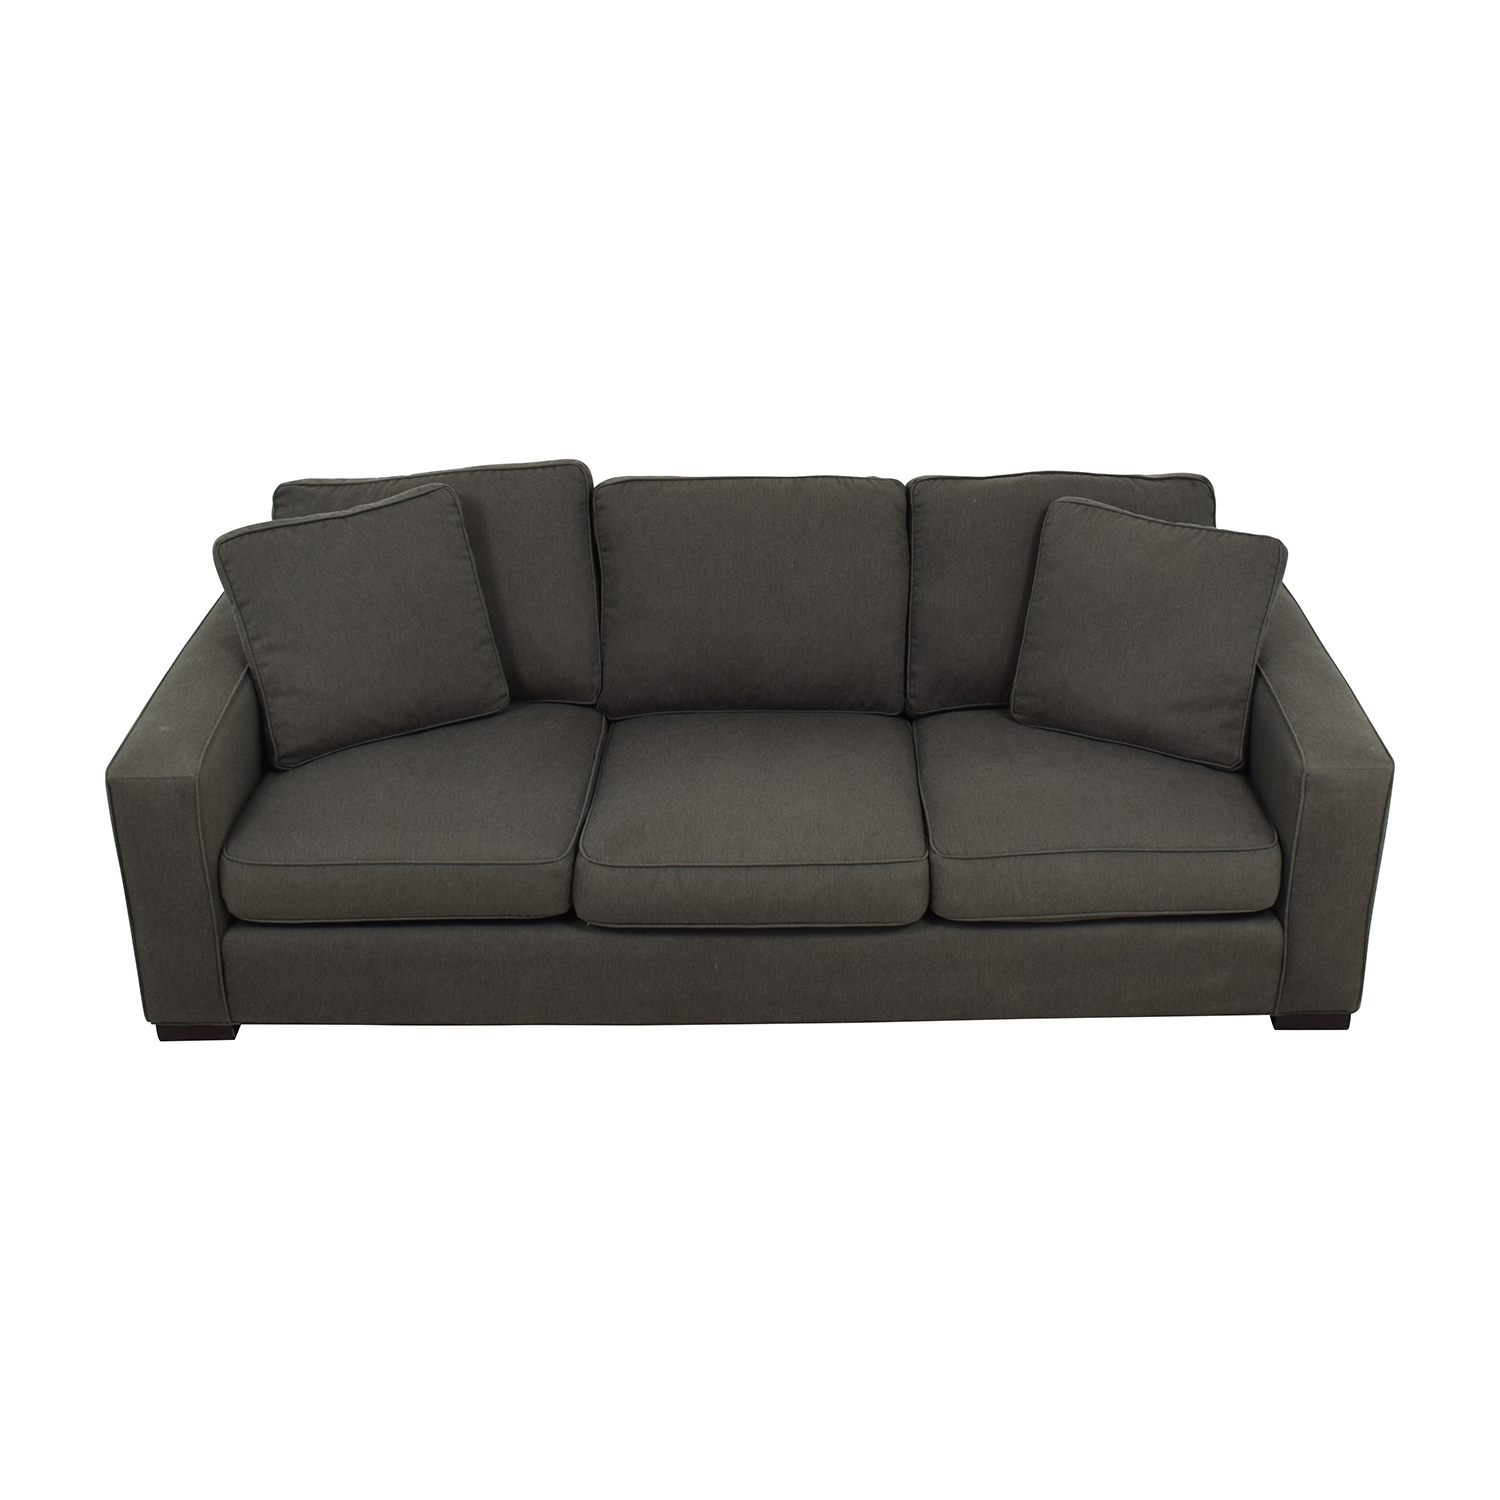 Good ... Room U0026 Board Room U0026 Board Metro Sofa In Charcoal ...